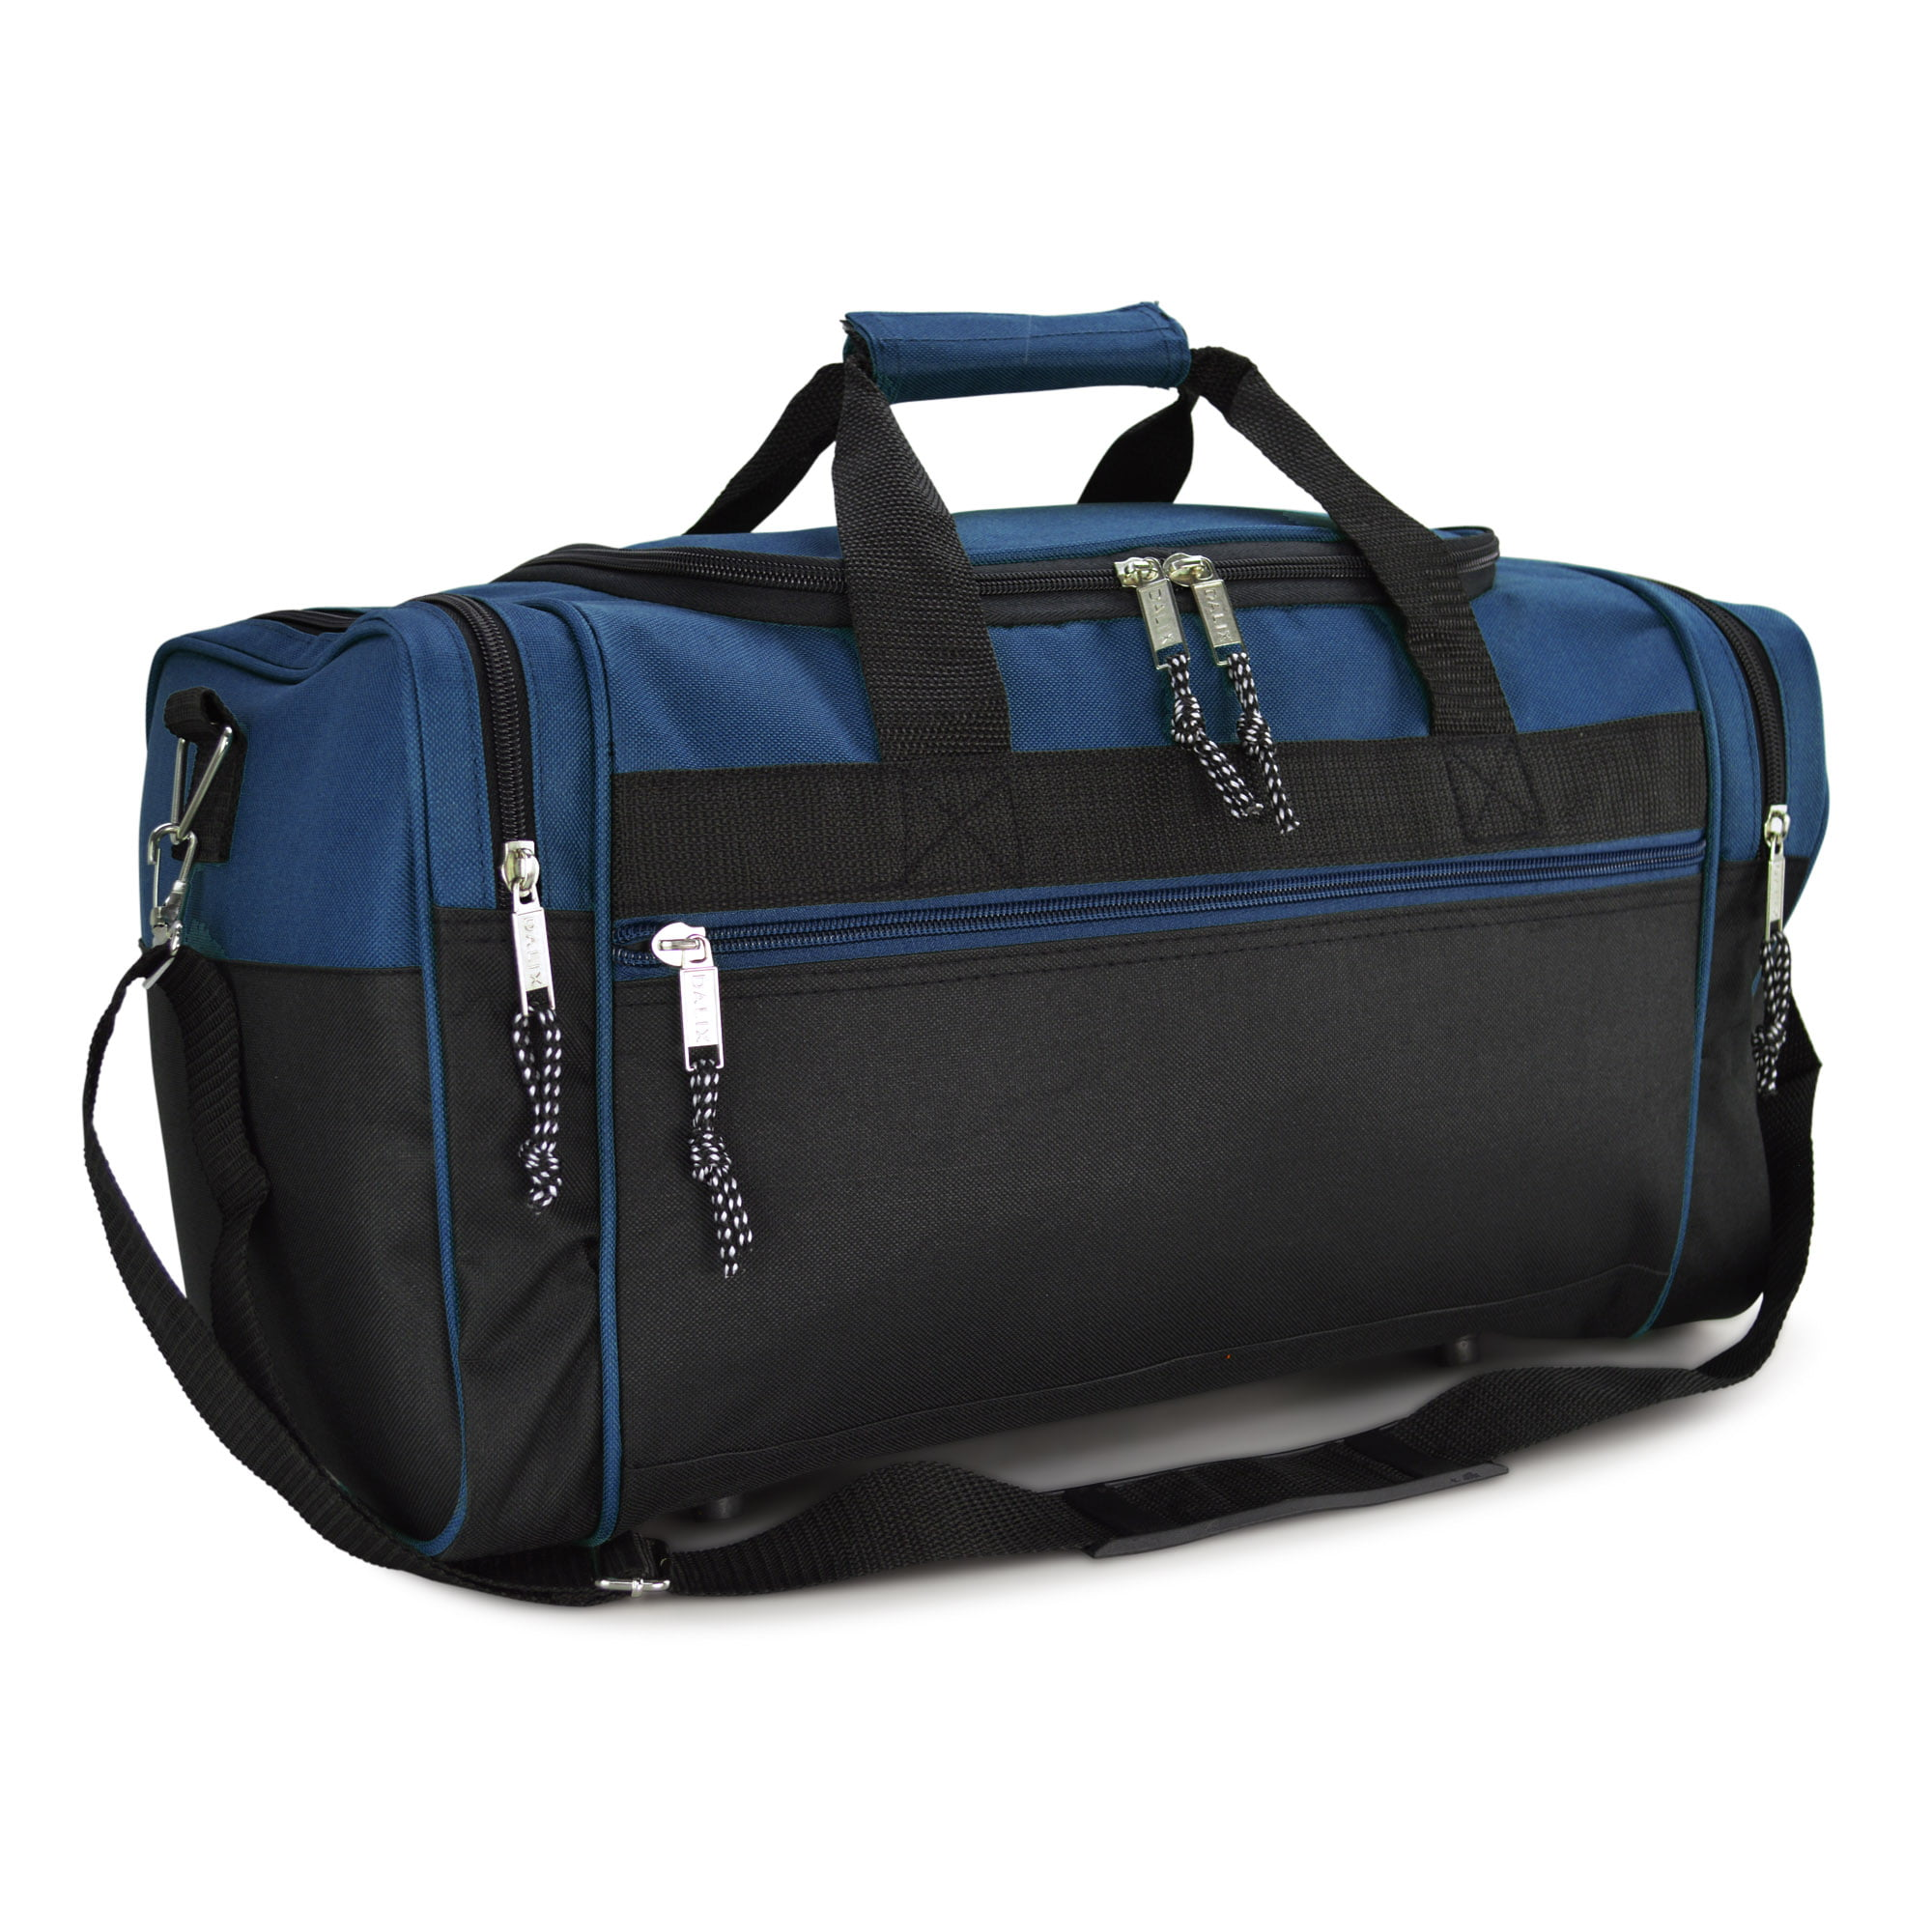 "DALIX 21"" Blank Sports Duffle Bag Gym Bag Travel Duffel with Adjustable Strap in Royal Blue by DALIX"